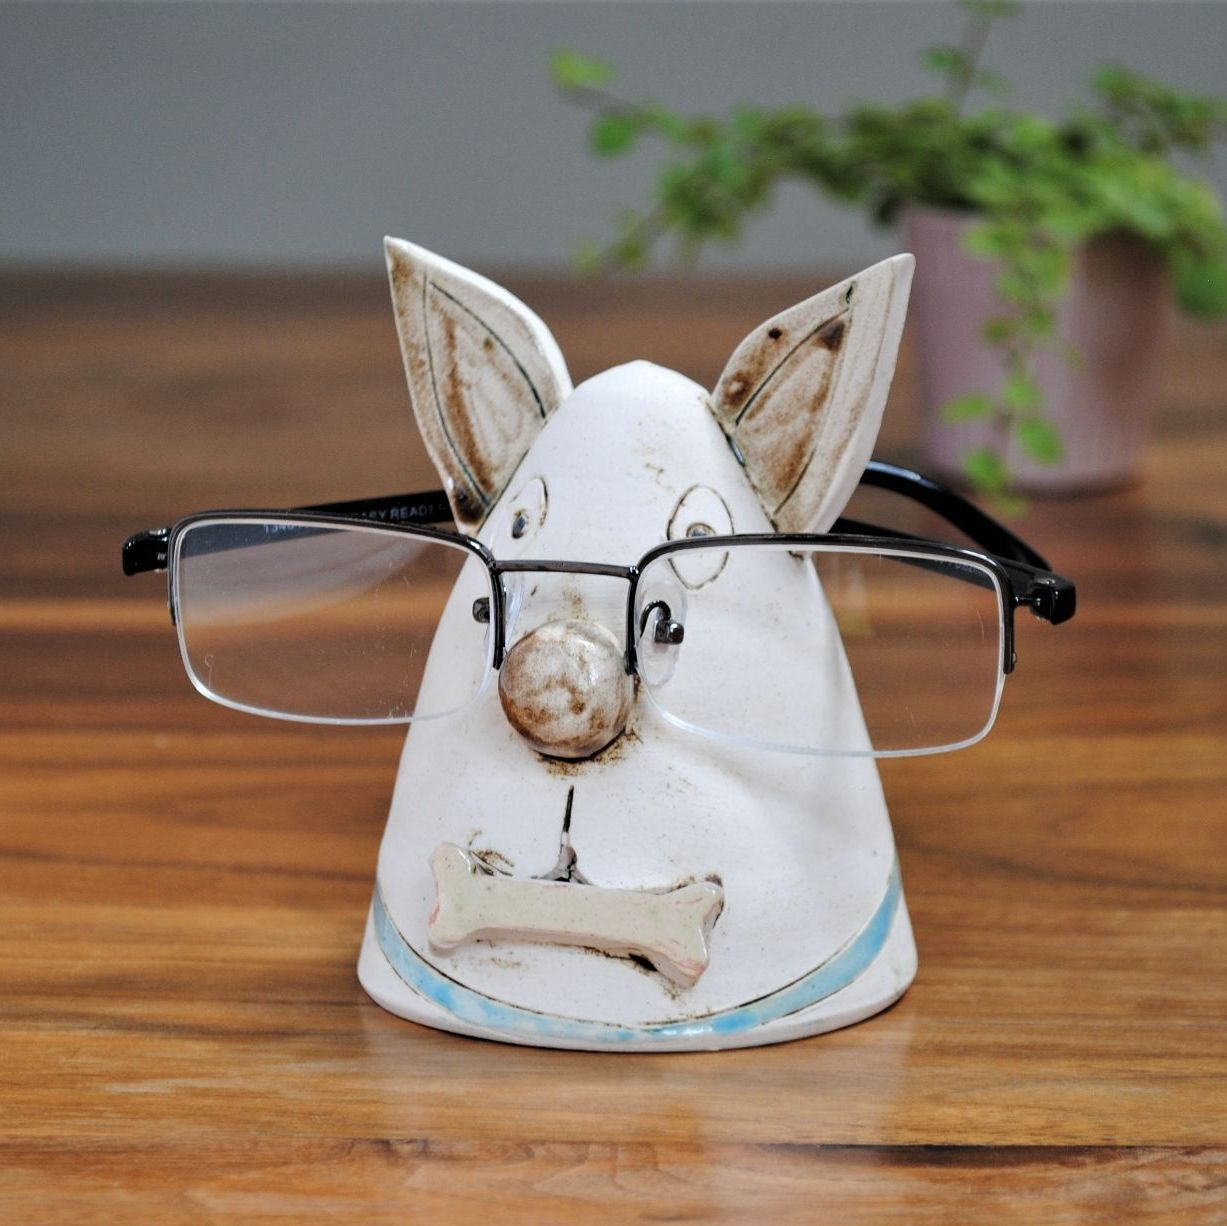 Glasses holder / spect stand in dog design.